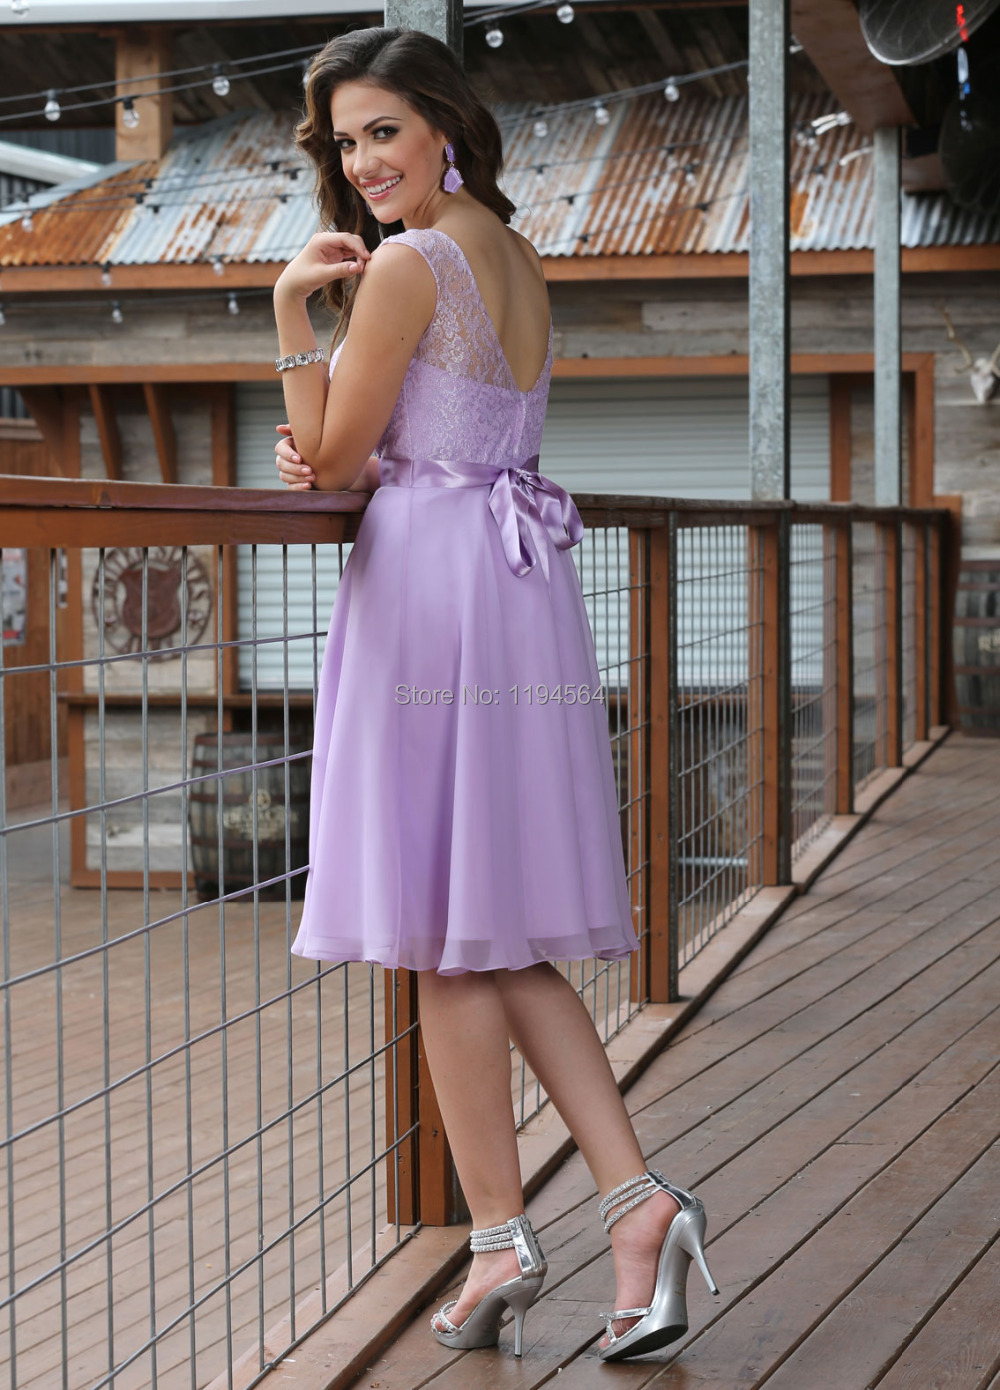 New Arrival 2017 Sheer Neck Chiffon Top Lace Bridesmaid Elegant Lilac For Wedding Guests Short Bb867 In From Weddings Events On